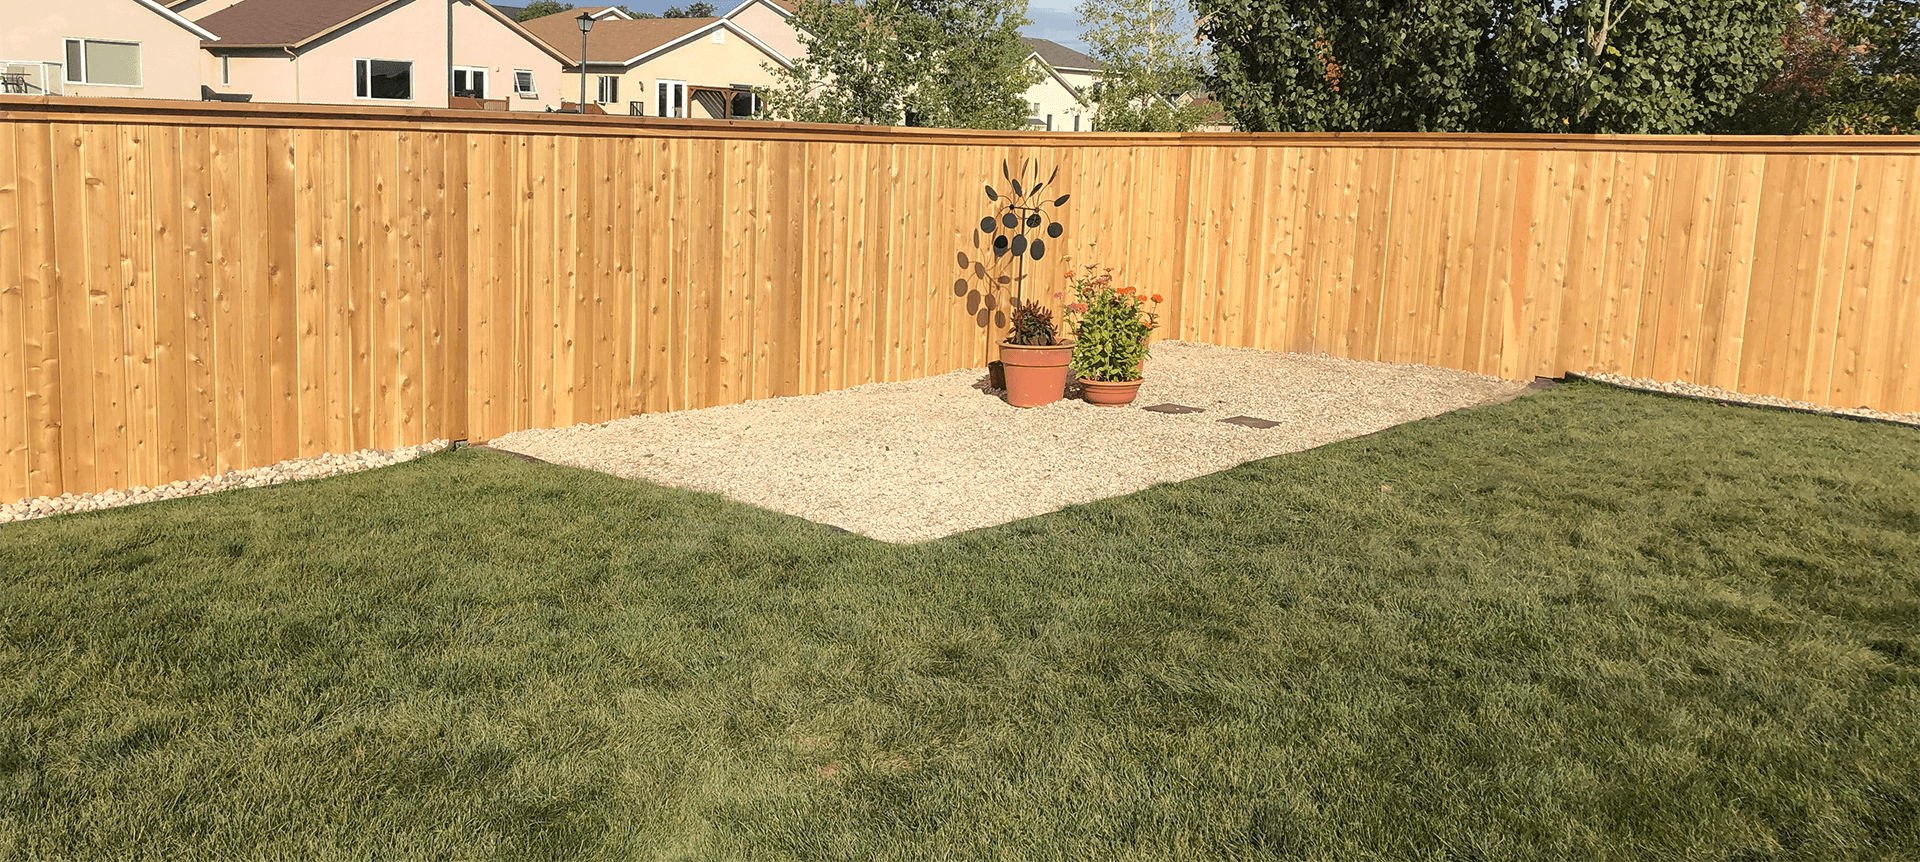 wooden fencing builder Winnipeg, MB